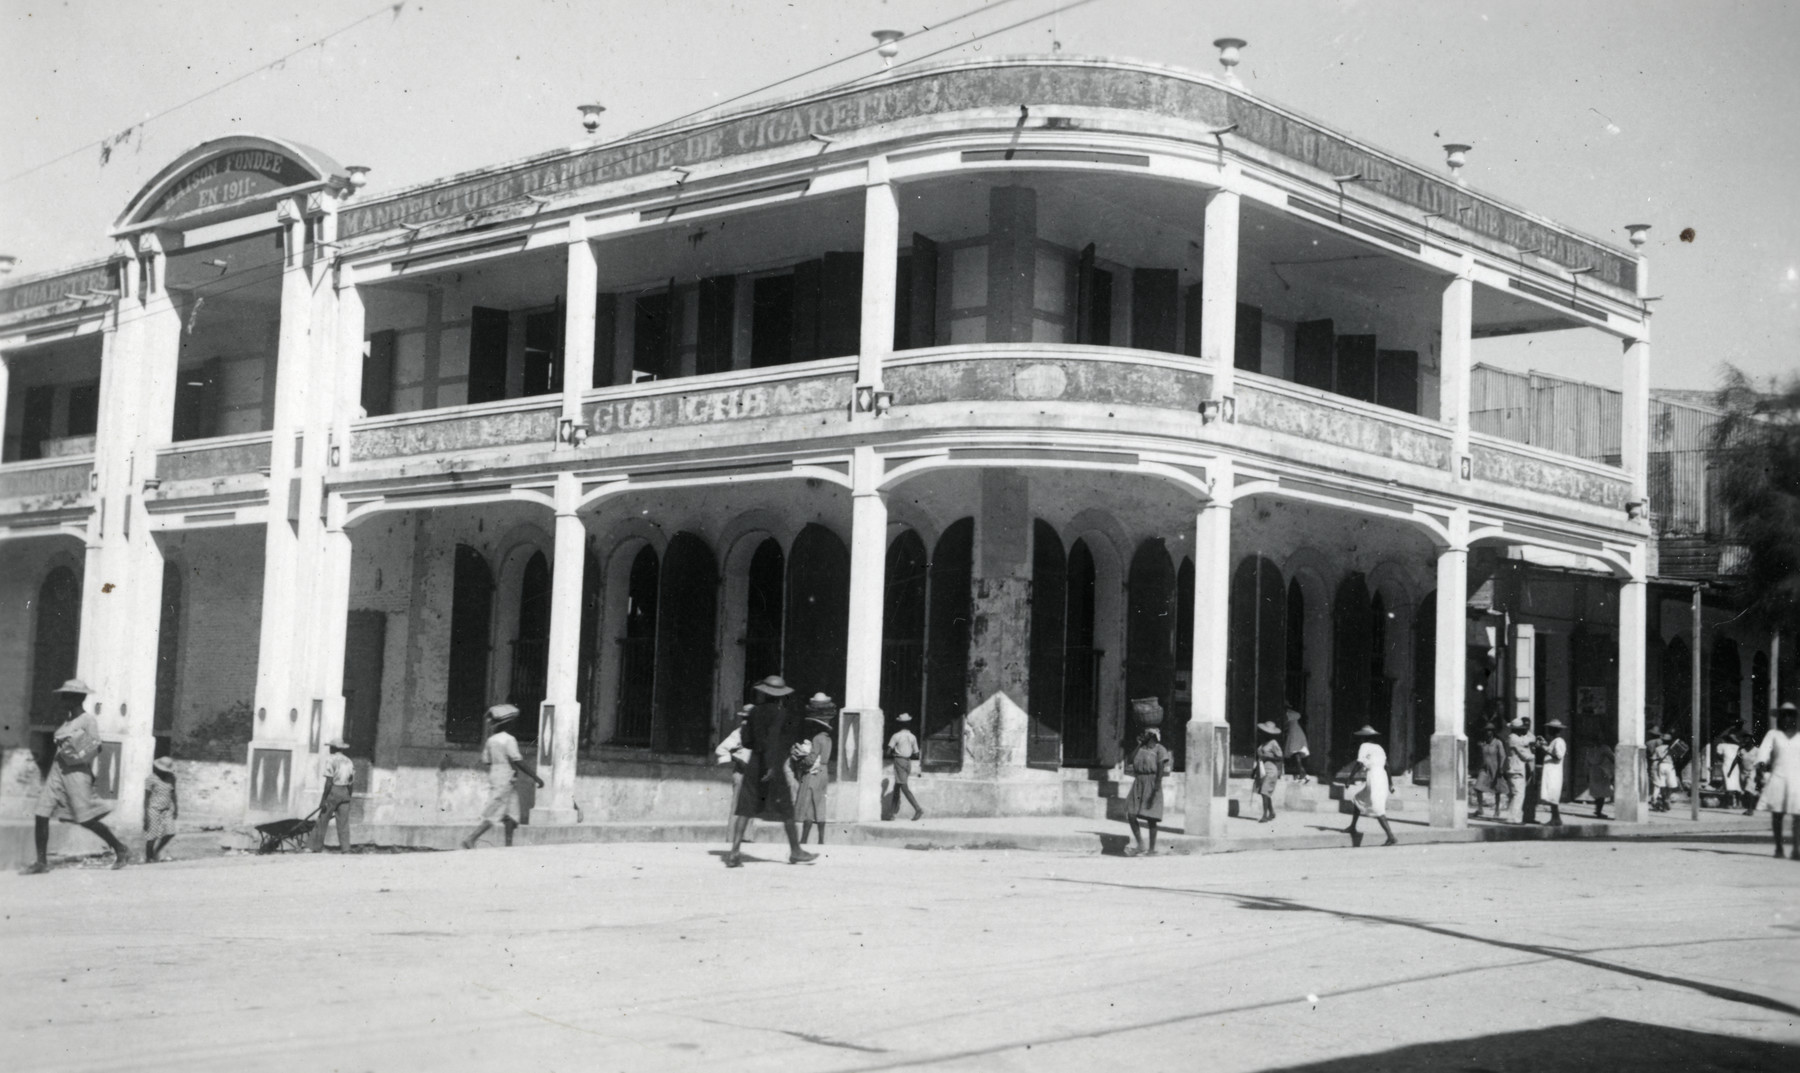 Exterior view of the Maison Pantal, the business belonging to Walter Meinberg and his brothers in Haiti.